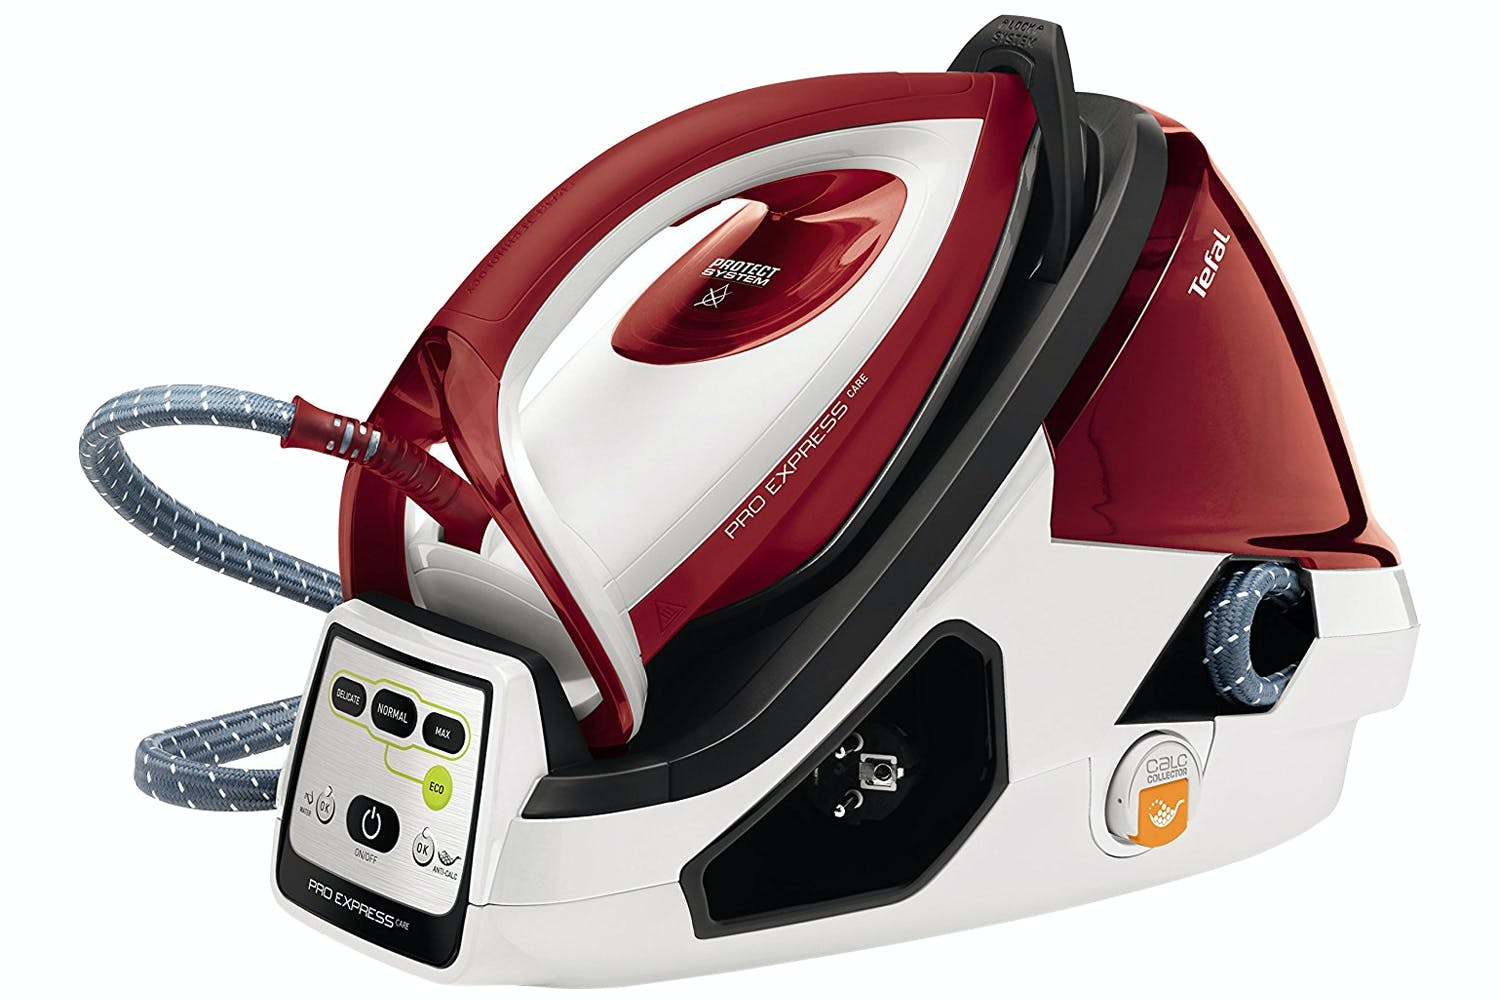 Tefal 2200W Pro High Pressure Steam Generator Iron | GV9061G0